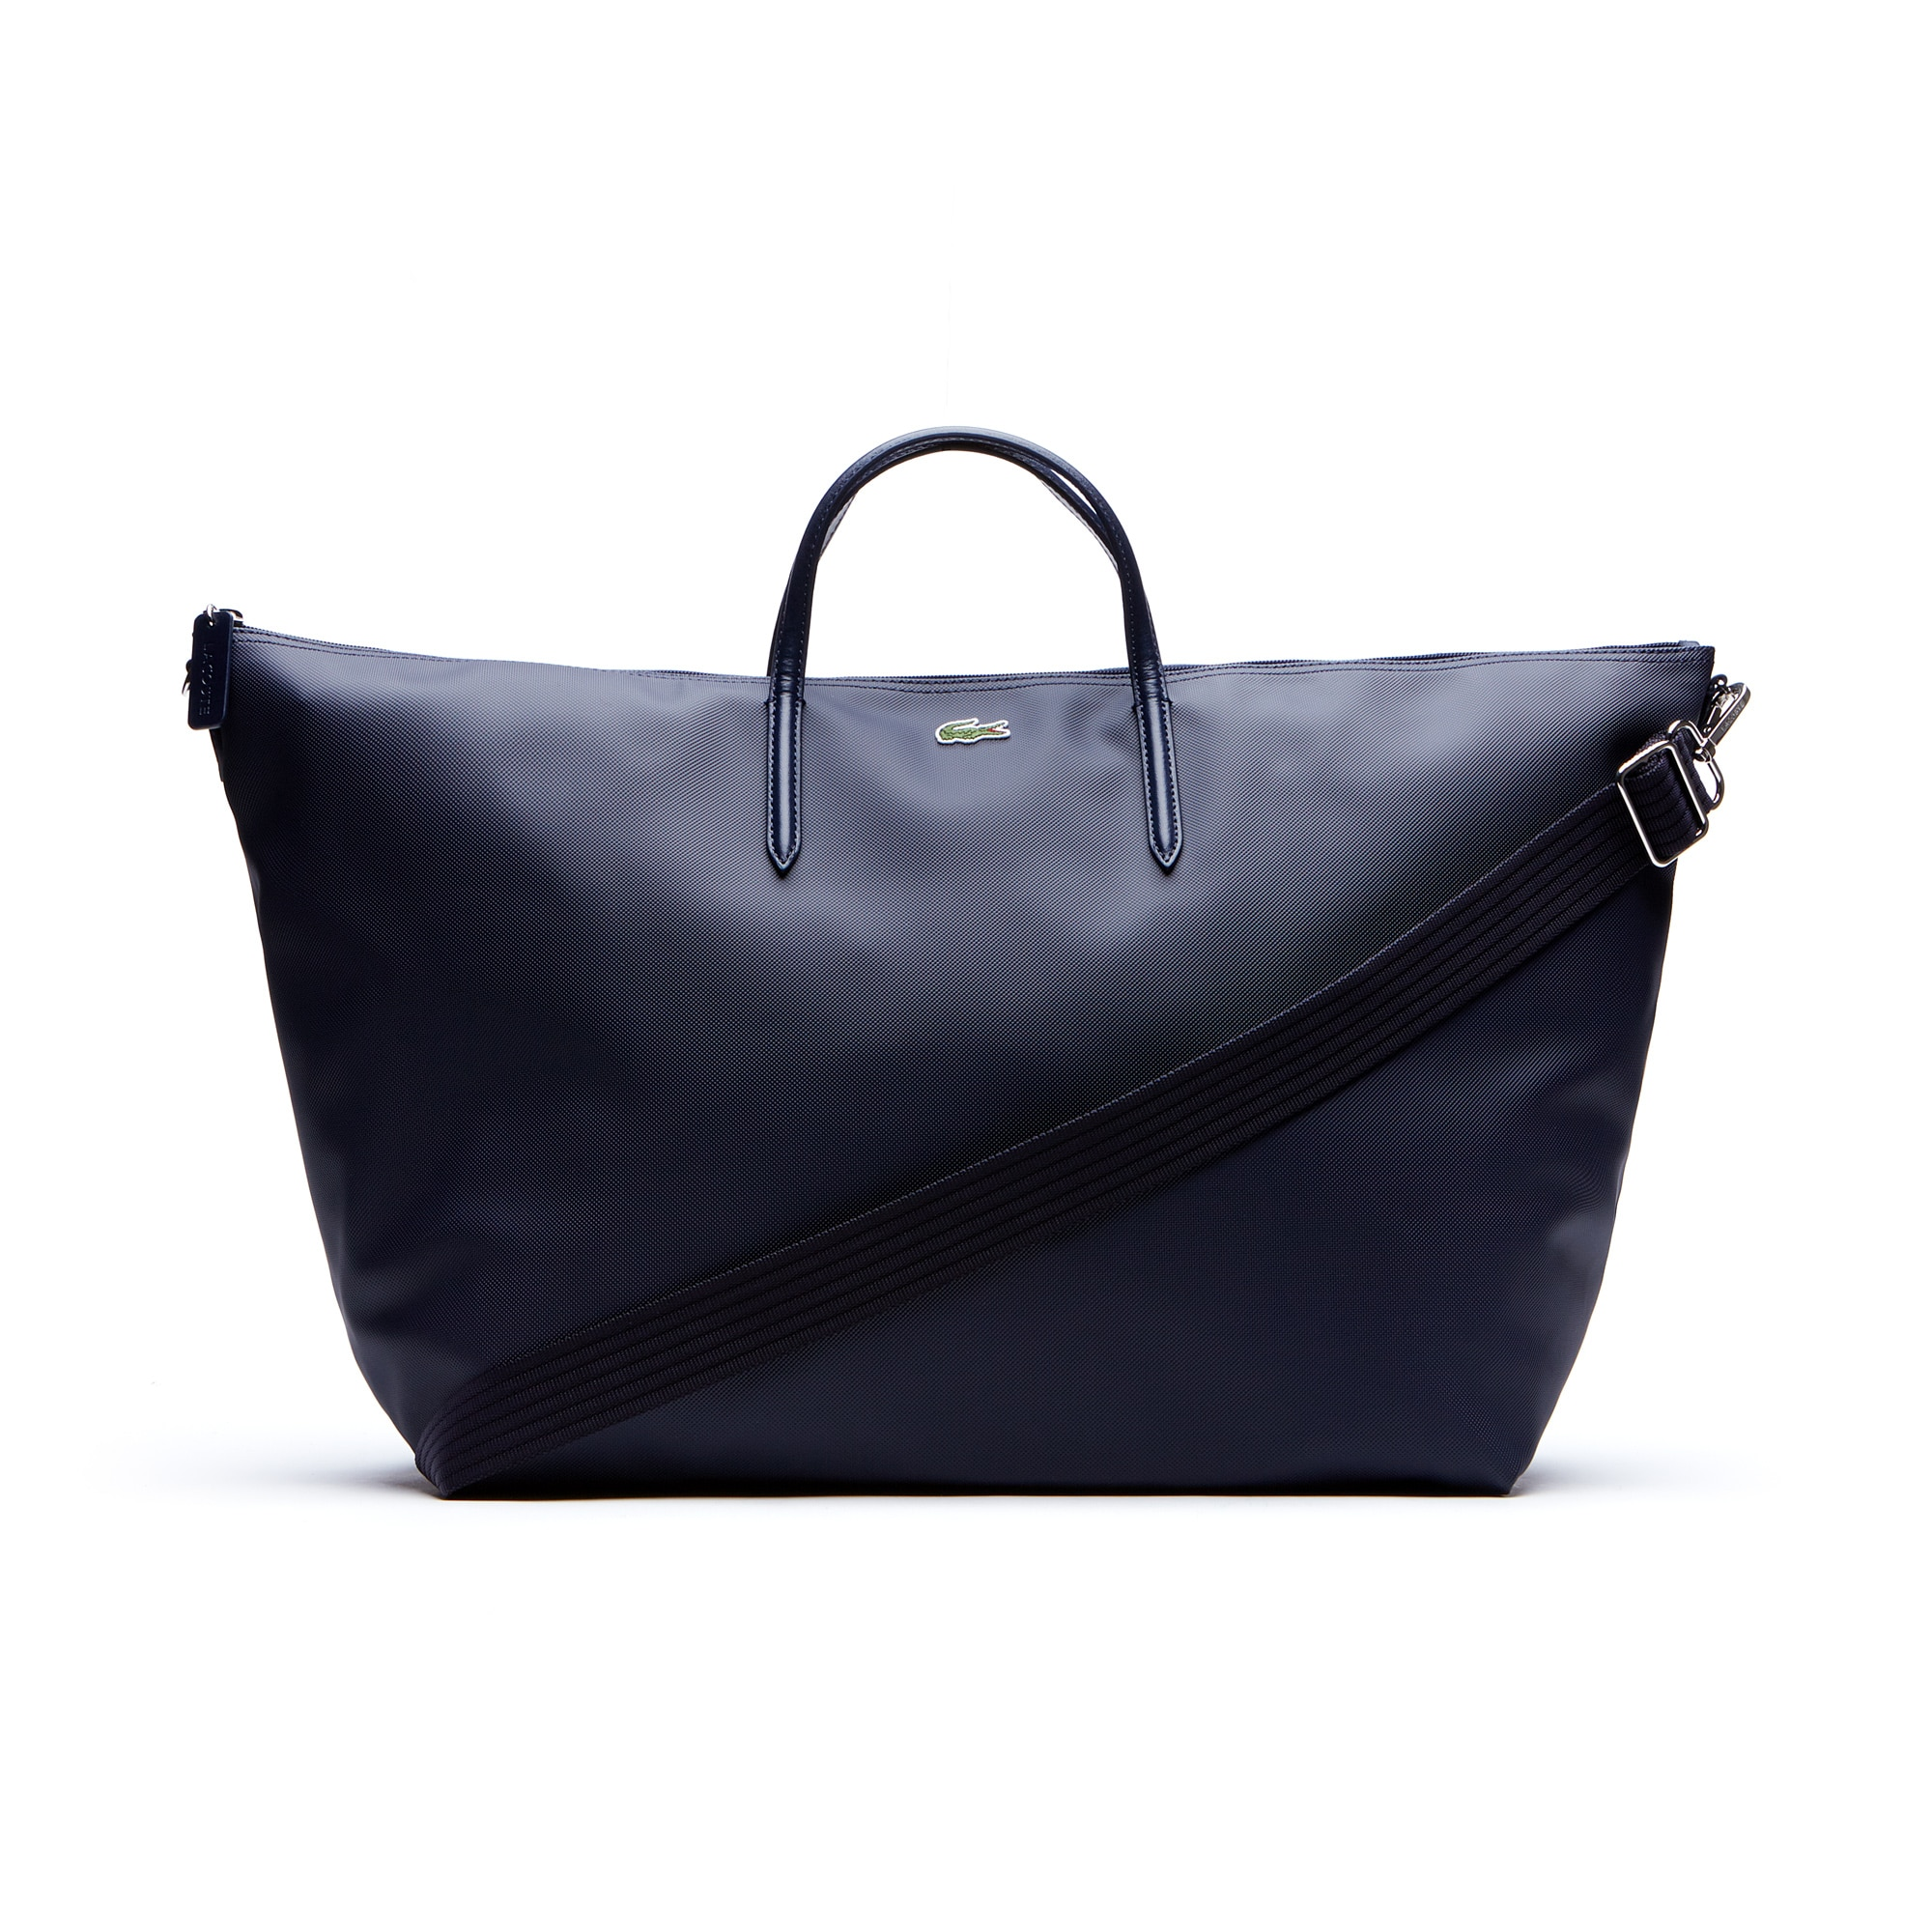 cca1fea2fd5 + 1 color + 4 colors. 40% off. Women's L.12.12 Weekend Tote Bag